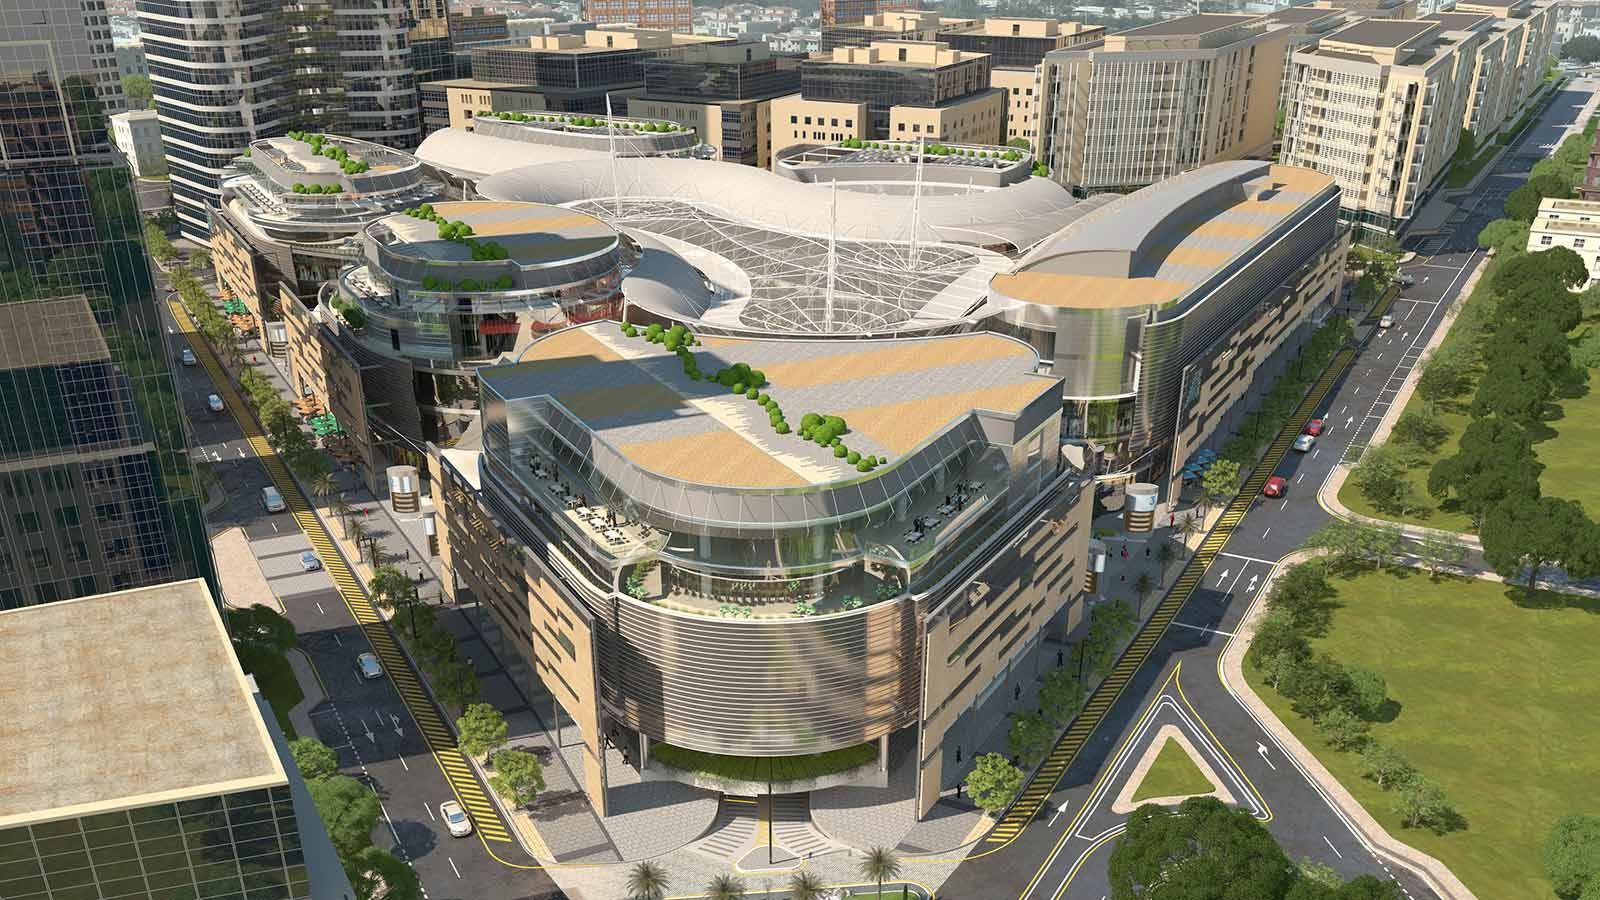 European Bank for Reconstruction and Development Building Aerial View - Mace Group